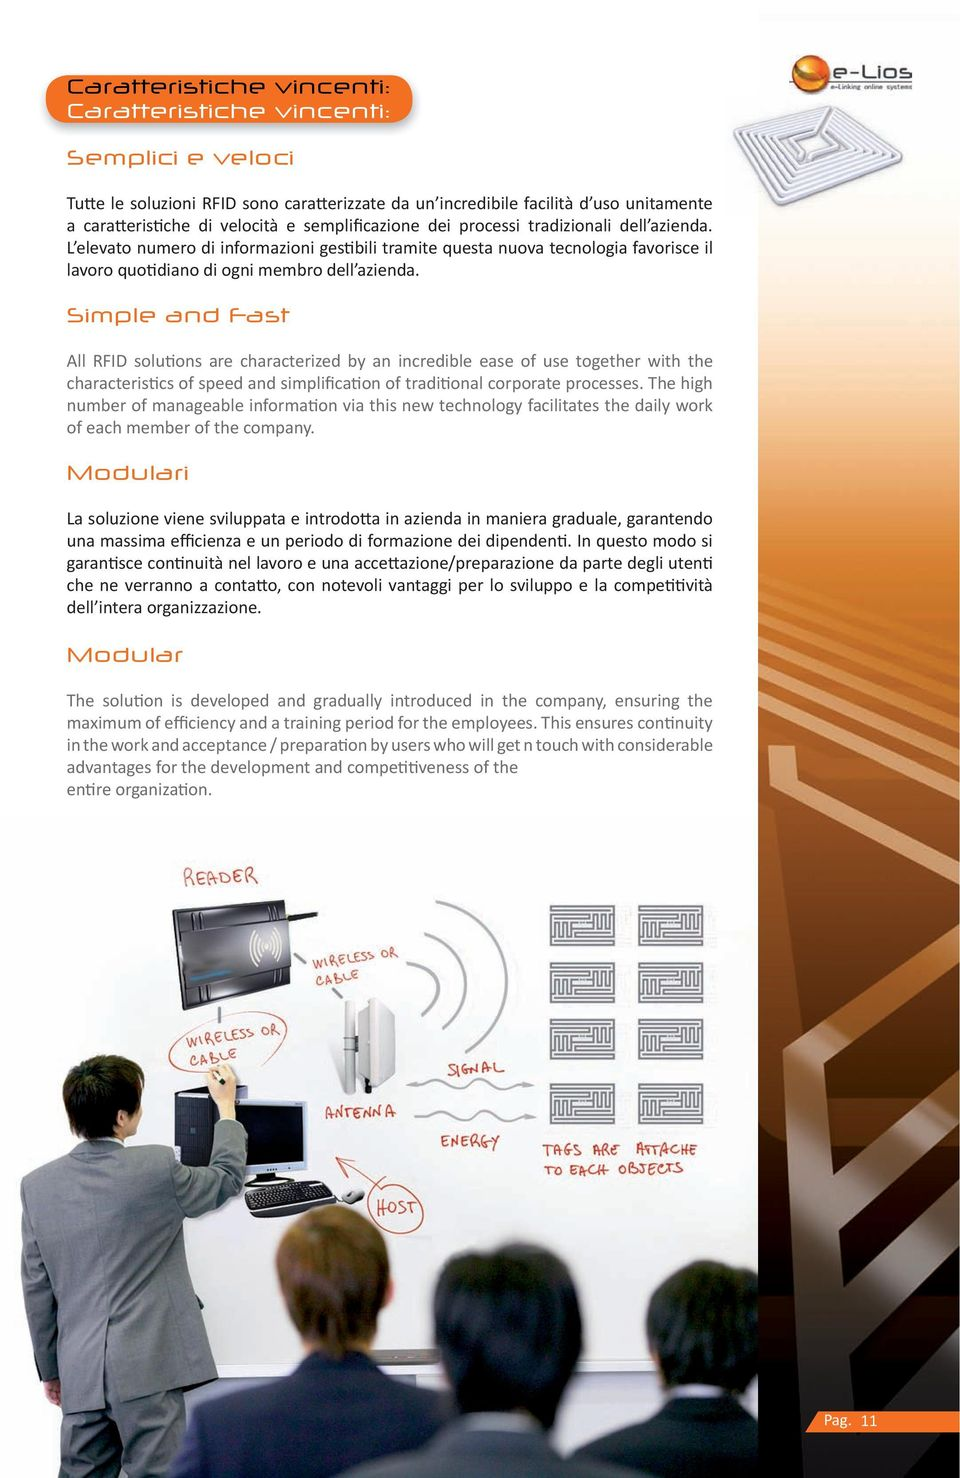 Simple and Fast All RFID solutions are characterized by an incredible ease of use together with the characteristics of speed and simplification of traditional corporate processes.